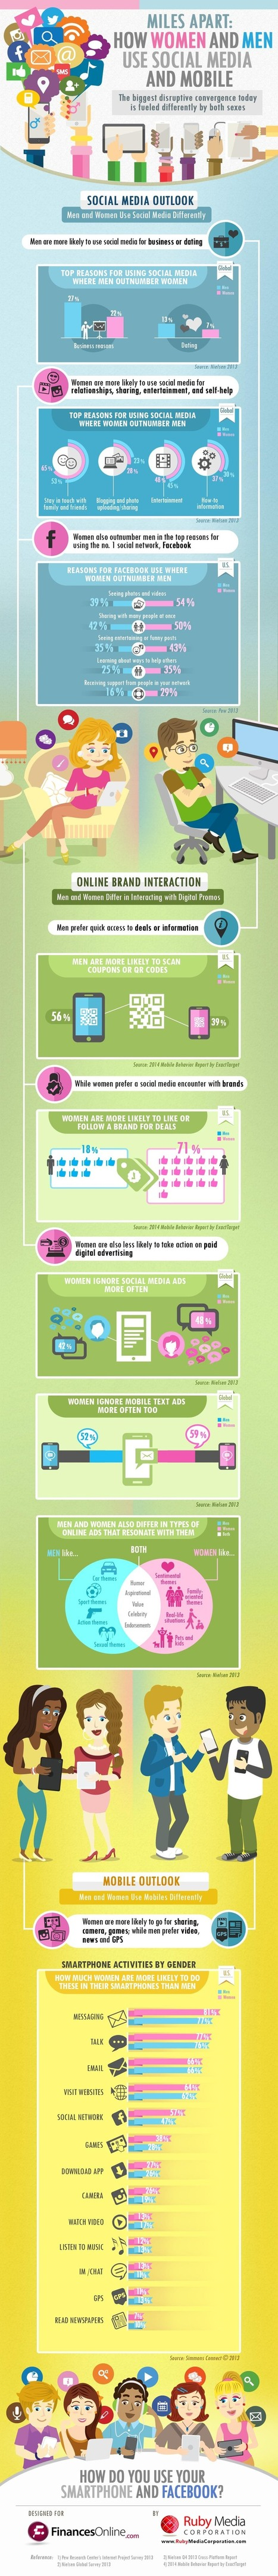 How Women and Men Use Social Media and Mobile | Digital Marketing & Social Networking | Scoop.it